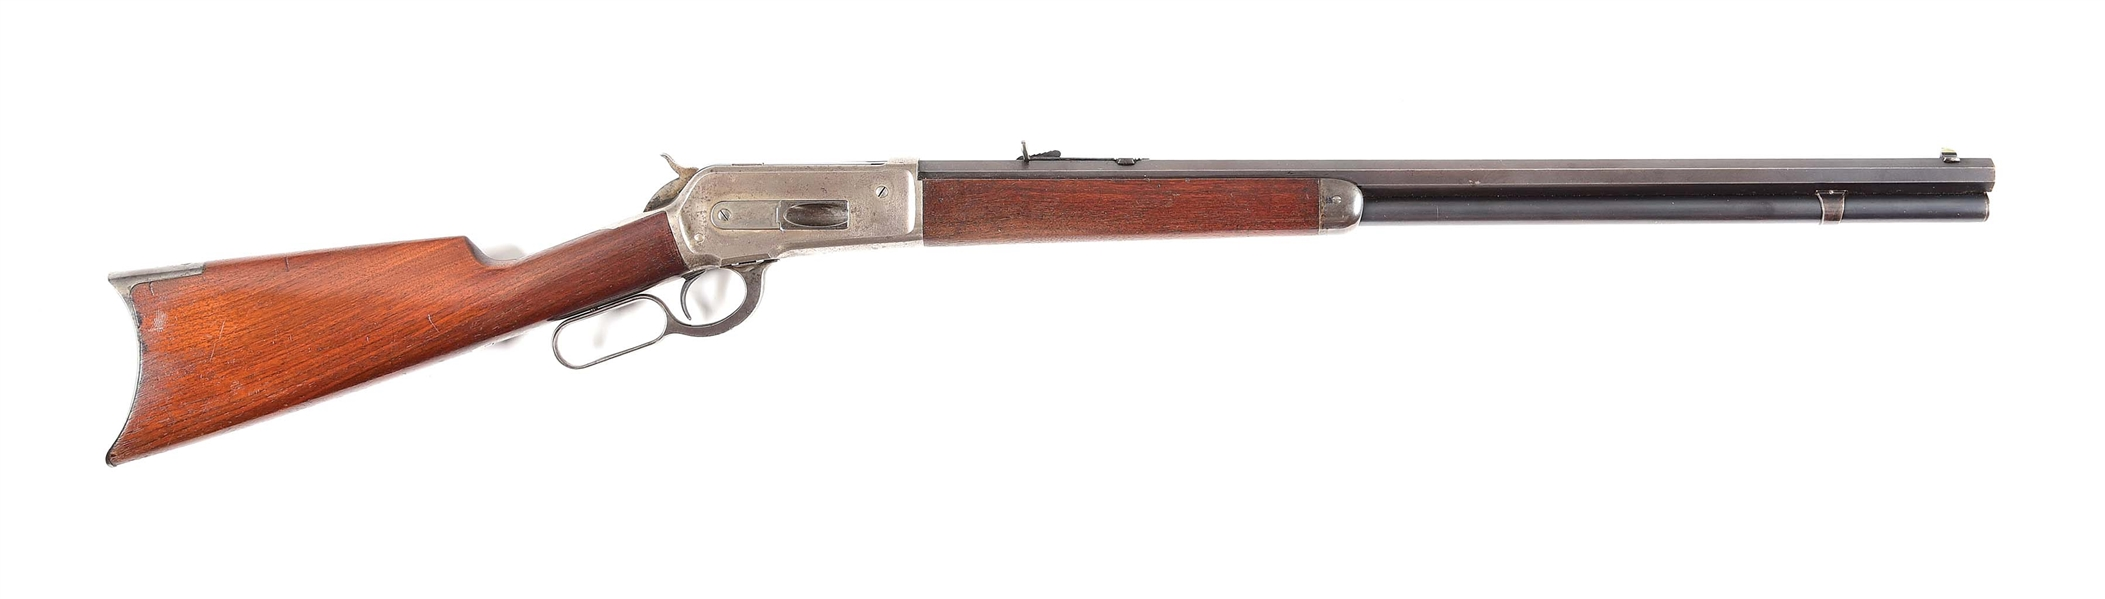 (A) WINCHESTER 1886 LEVER ACTION RIFLE.